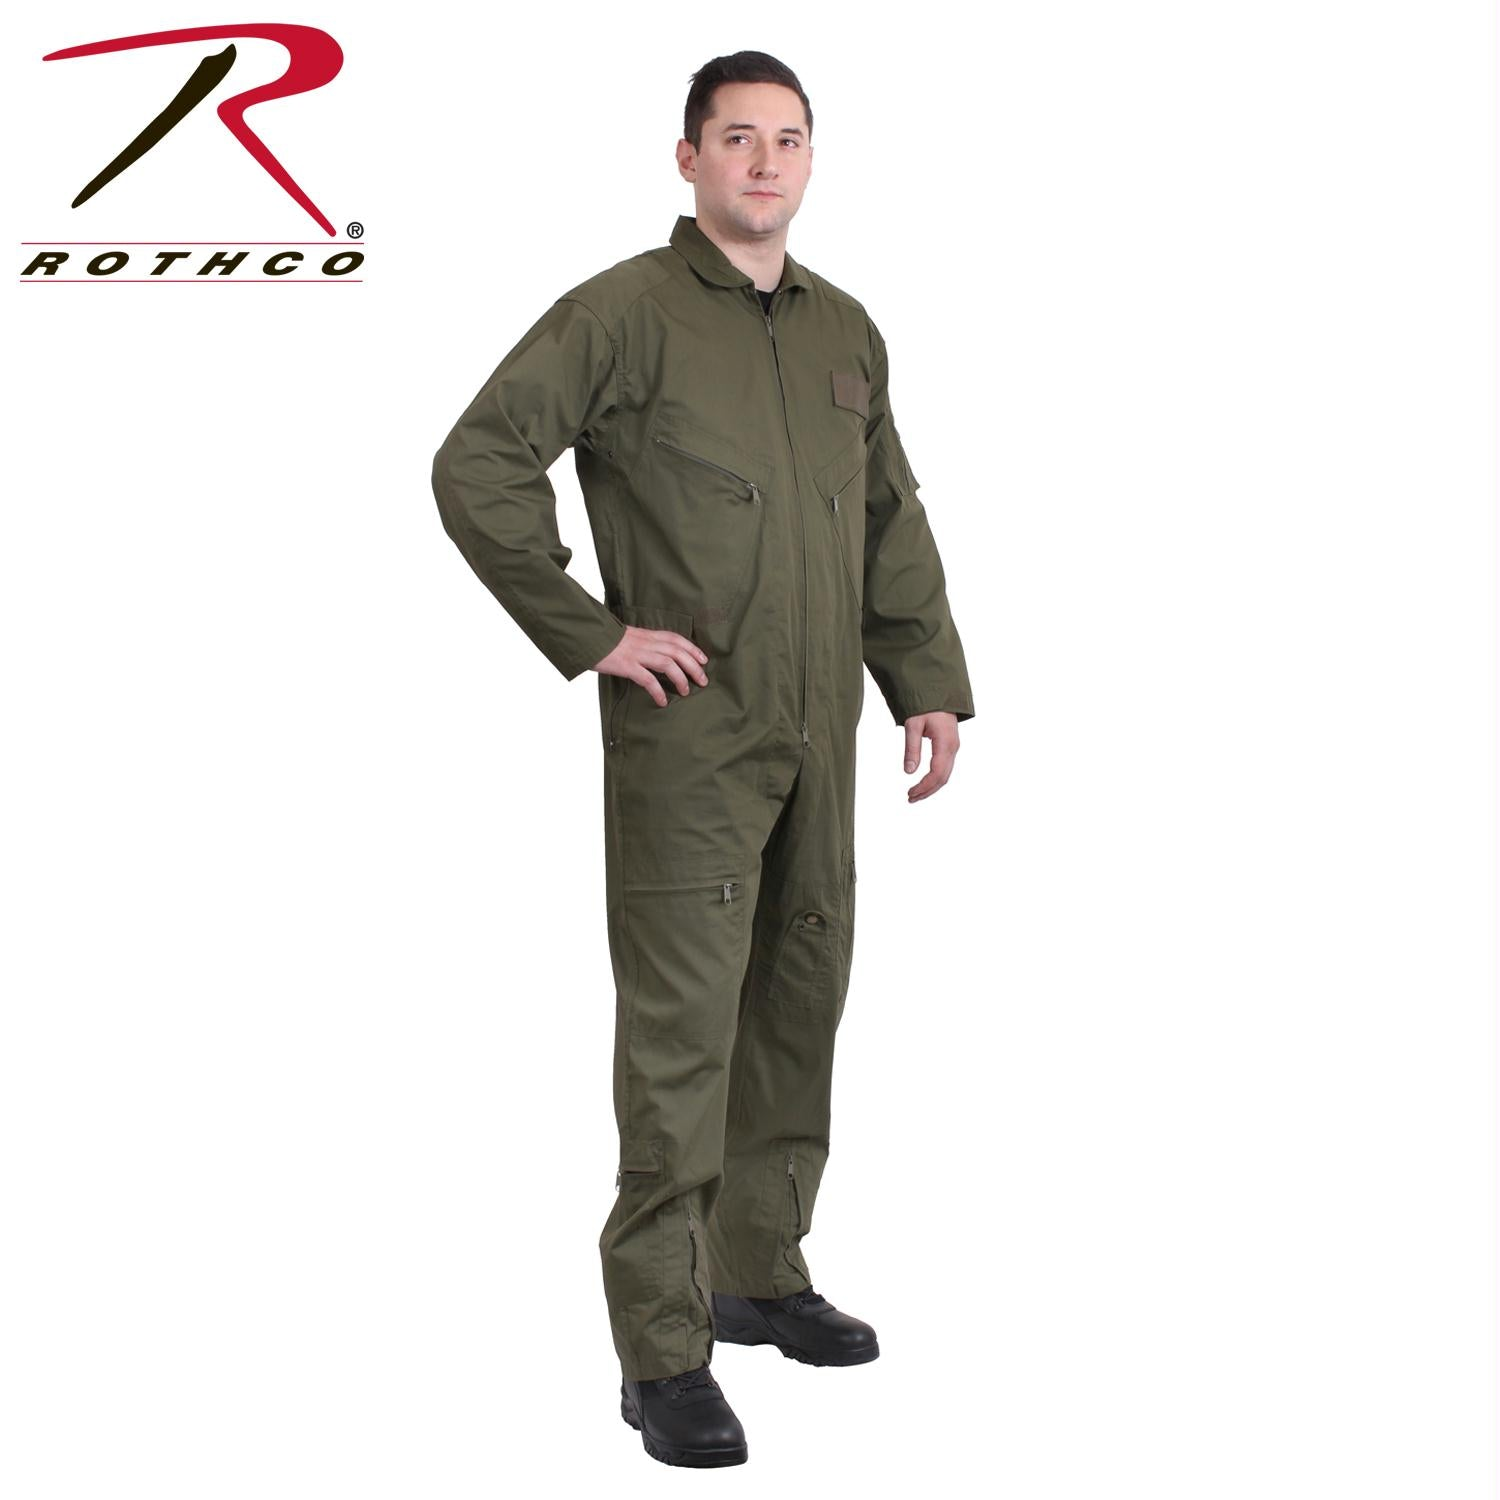 Rothco Flightsuits - Olive Drab / 6XL